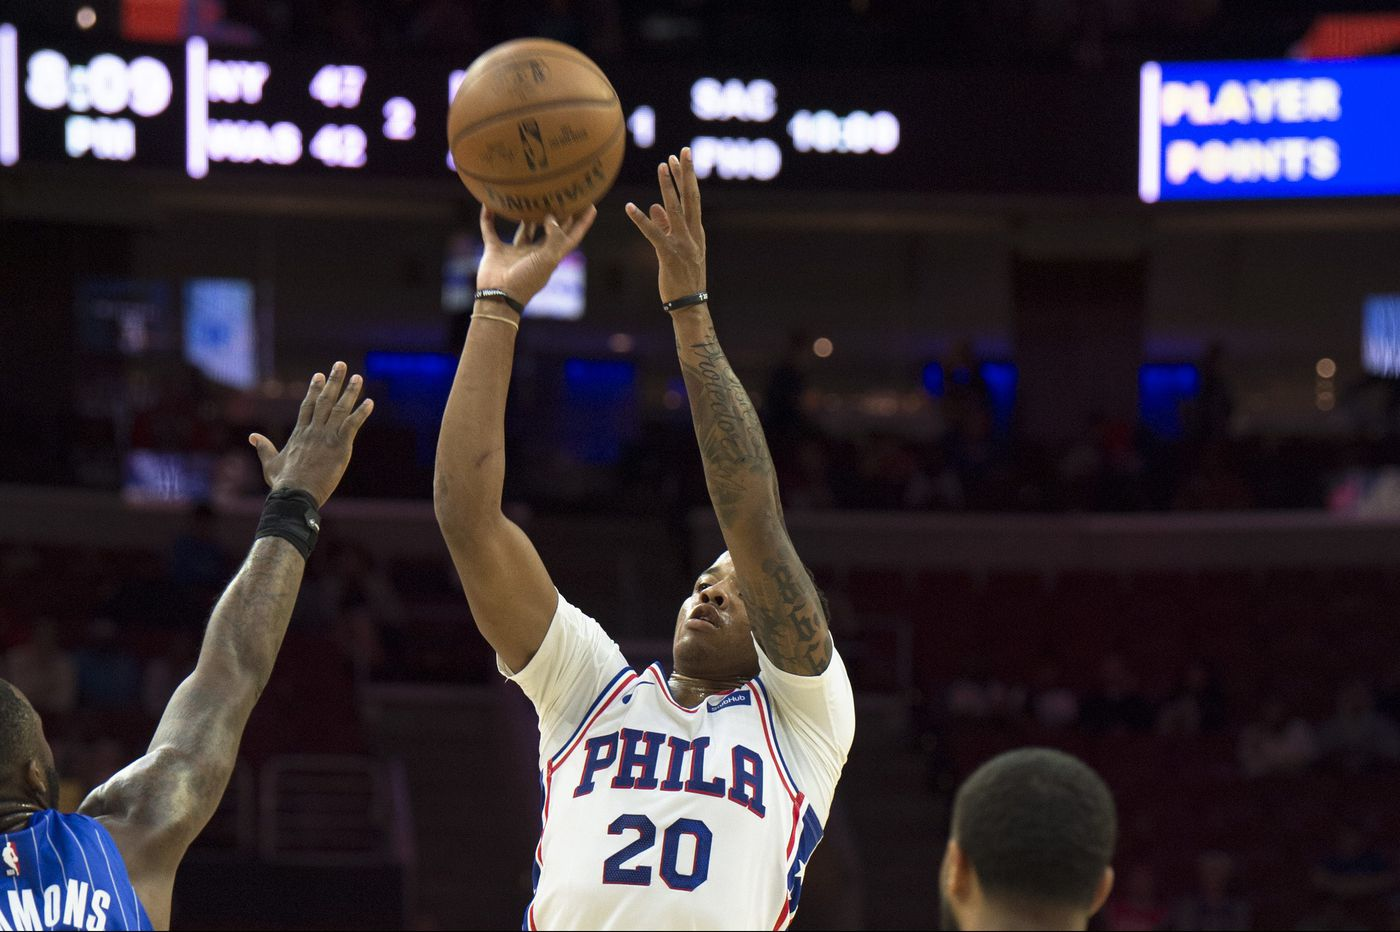 Sixers' Markelle Fultz hits first preseason three, Ben Simmons yet to attempt one